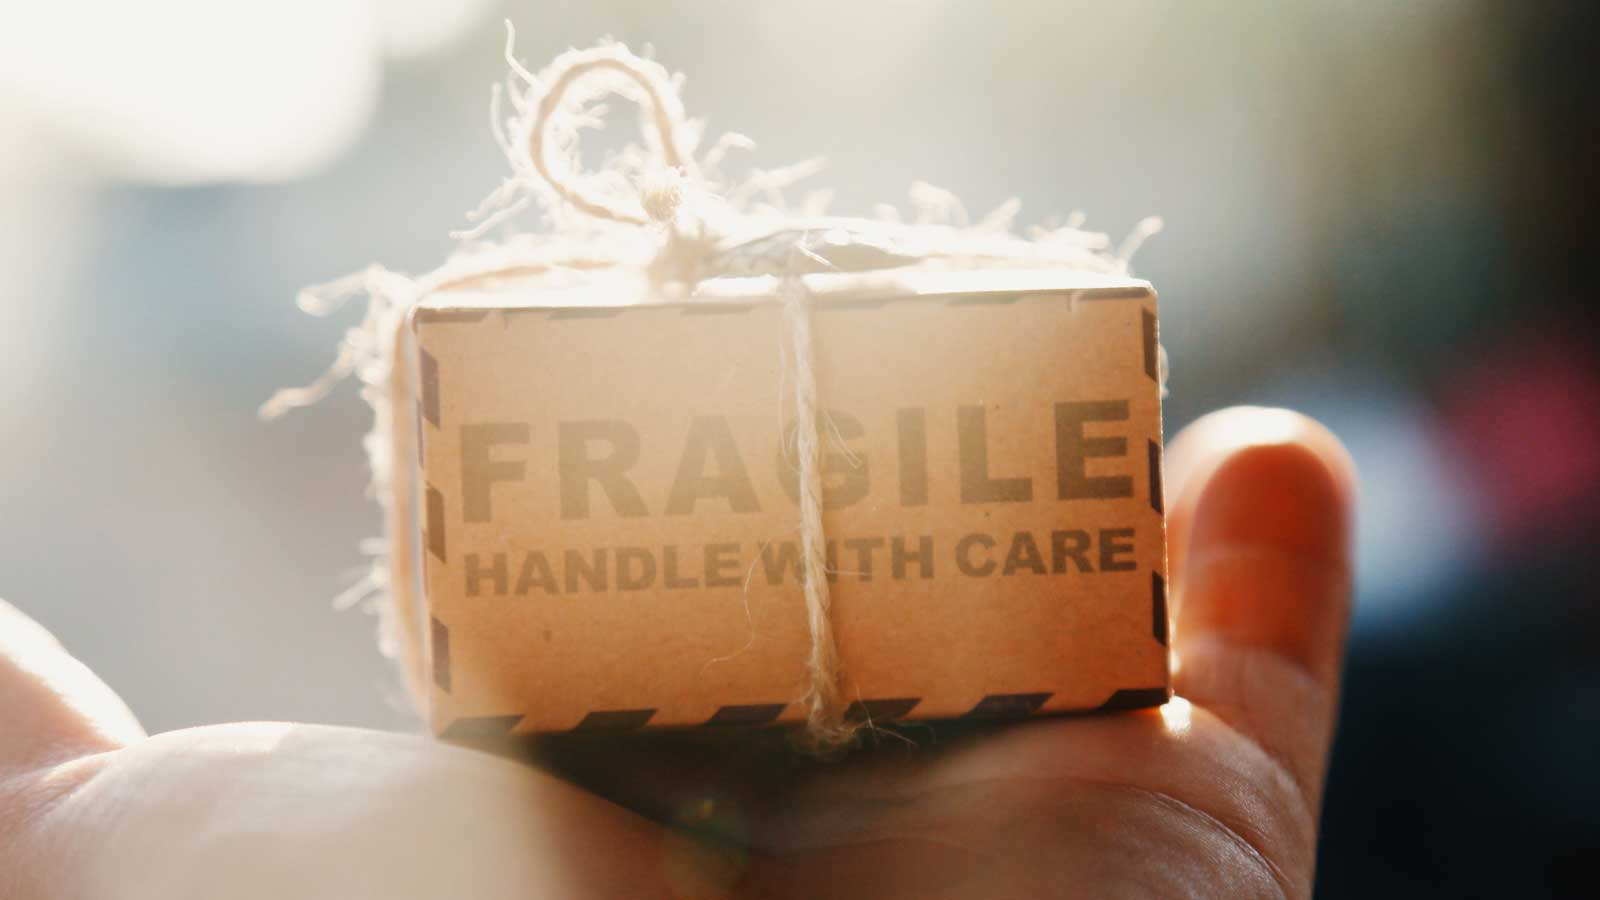 deliverability handle with care